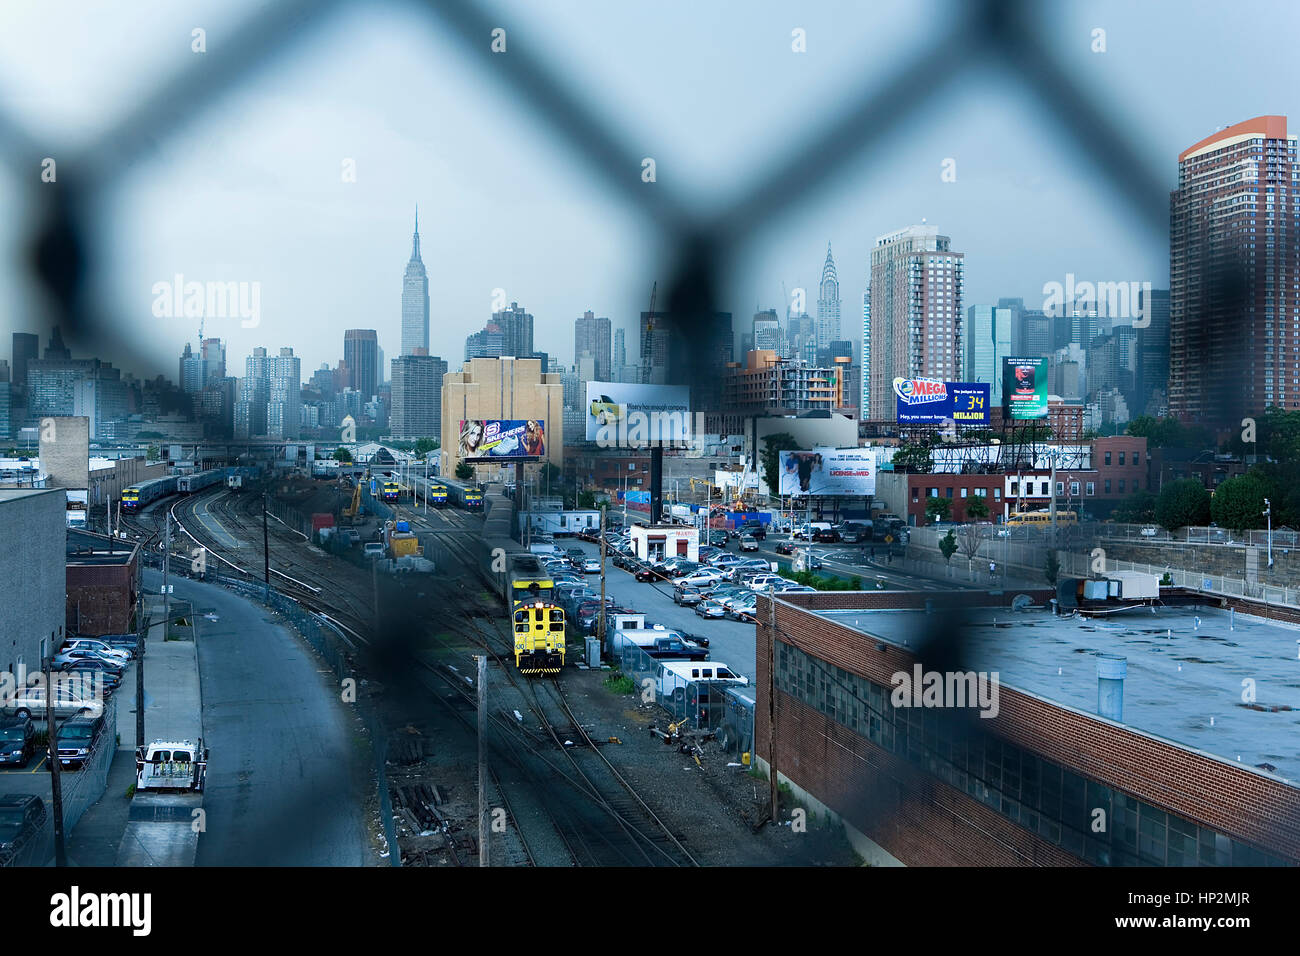 Manhattan as Seen from Greenpoint, New York City, USA - Stock Image